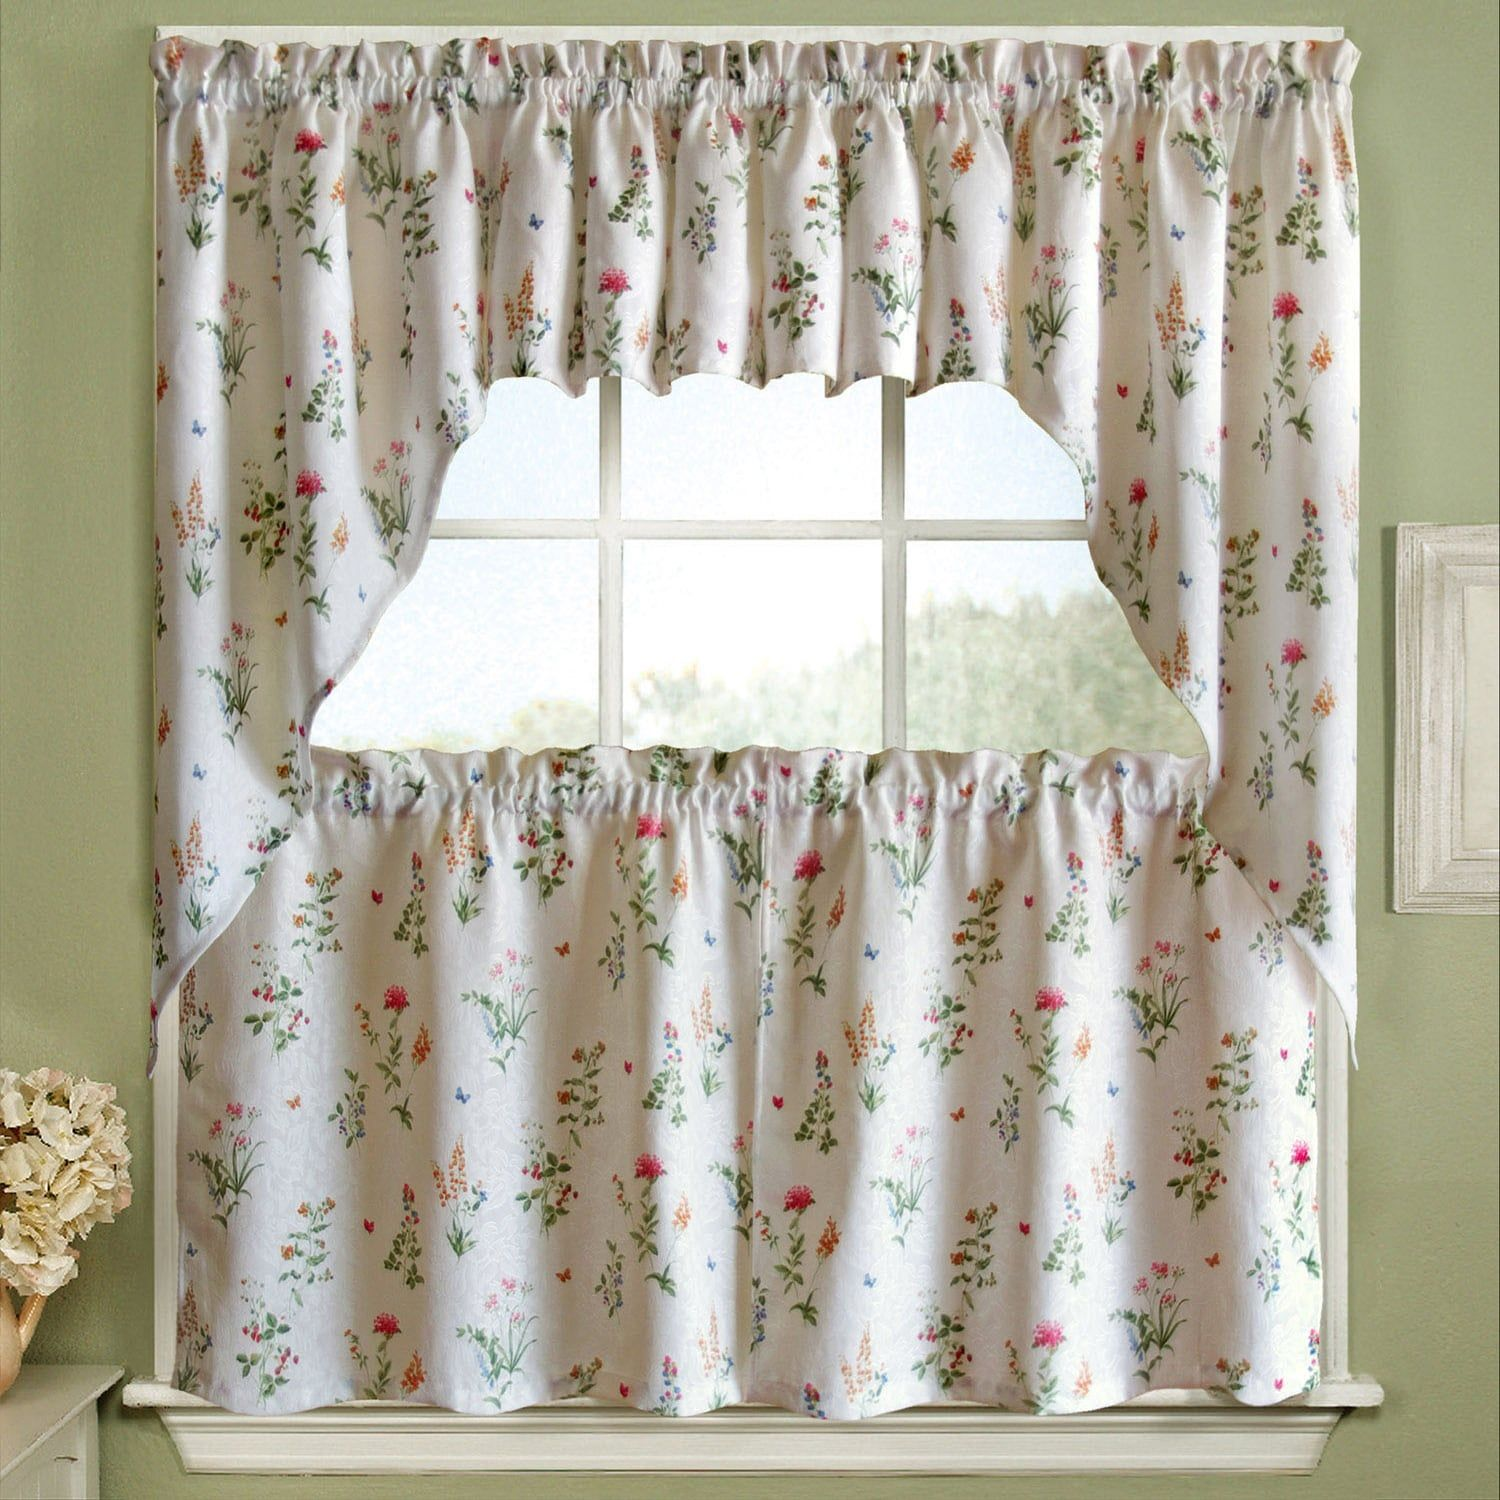 24 Inch Kitchen Curtains Vibrant Floral Garden Motif Jacquard Window Curtain Pieces In 2019